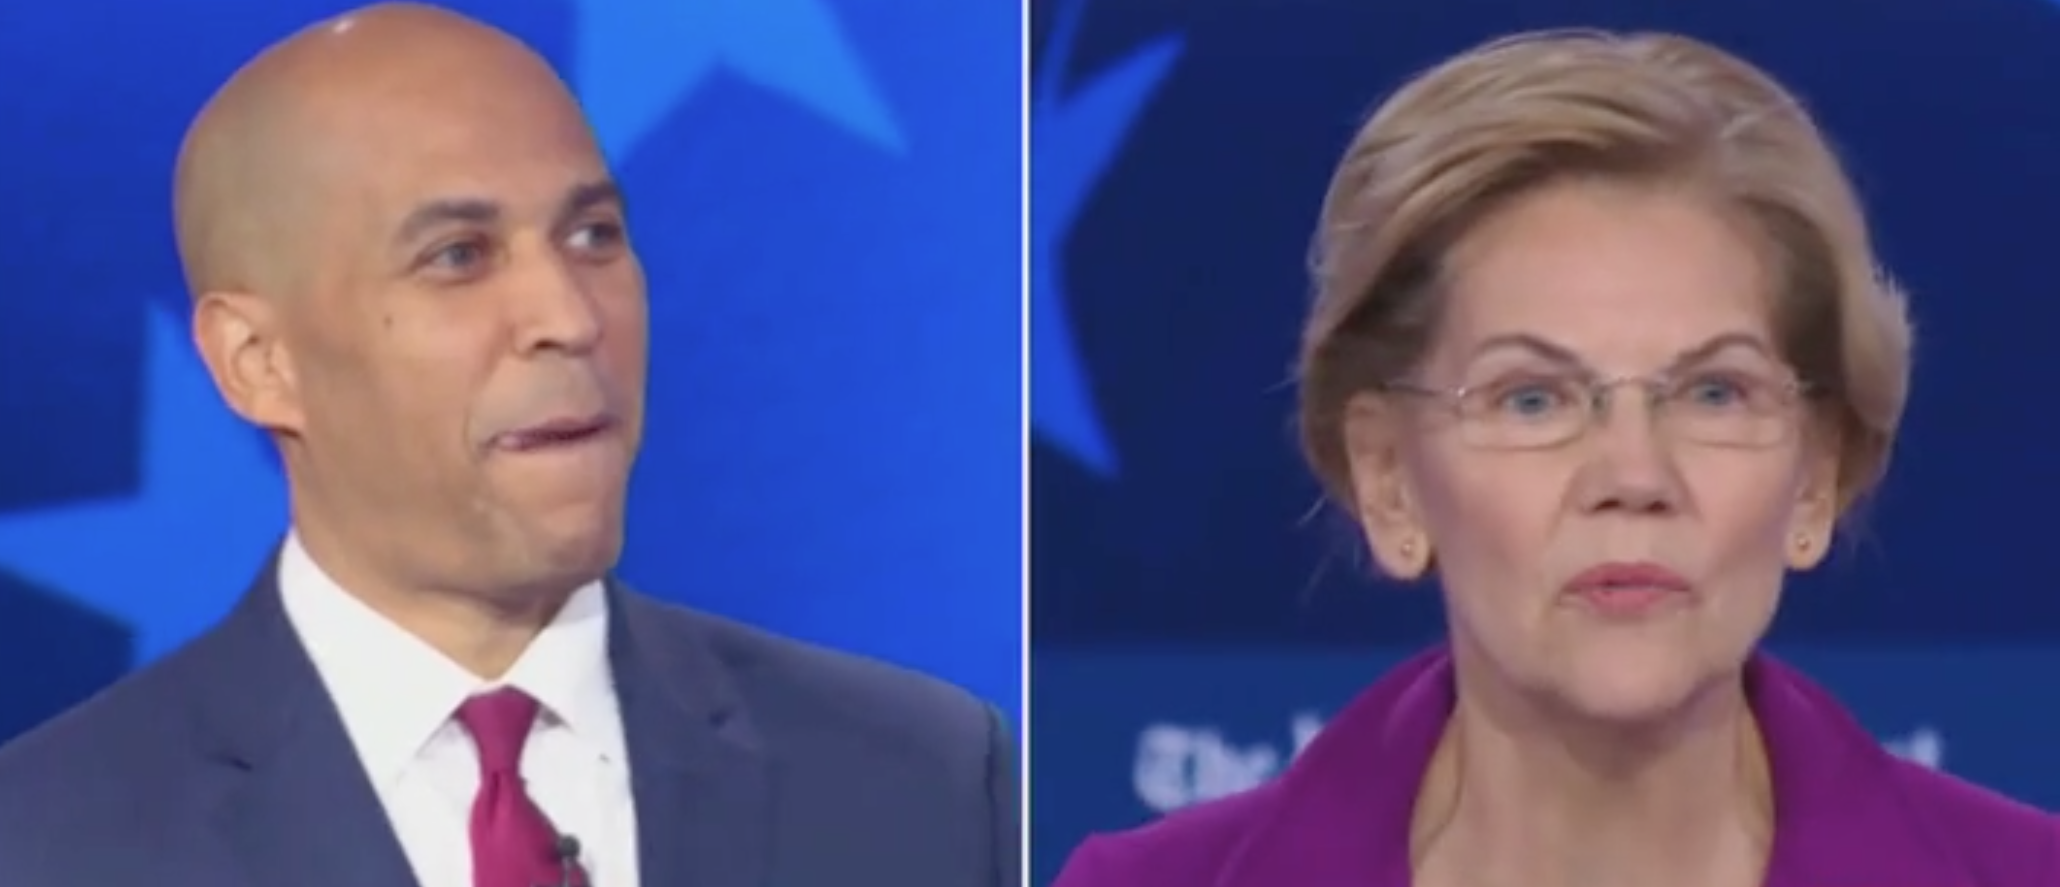 Booker And Warren Go Toe-To-Toe In Heated Exchange Over Wealth Tax